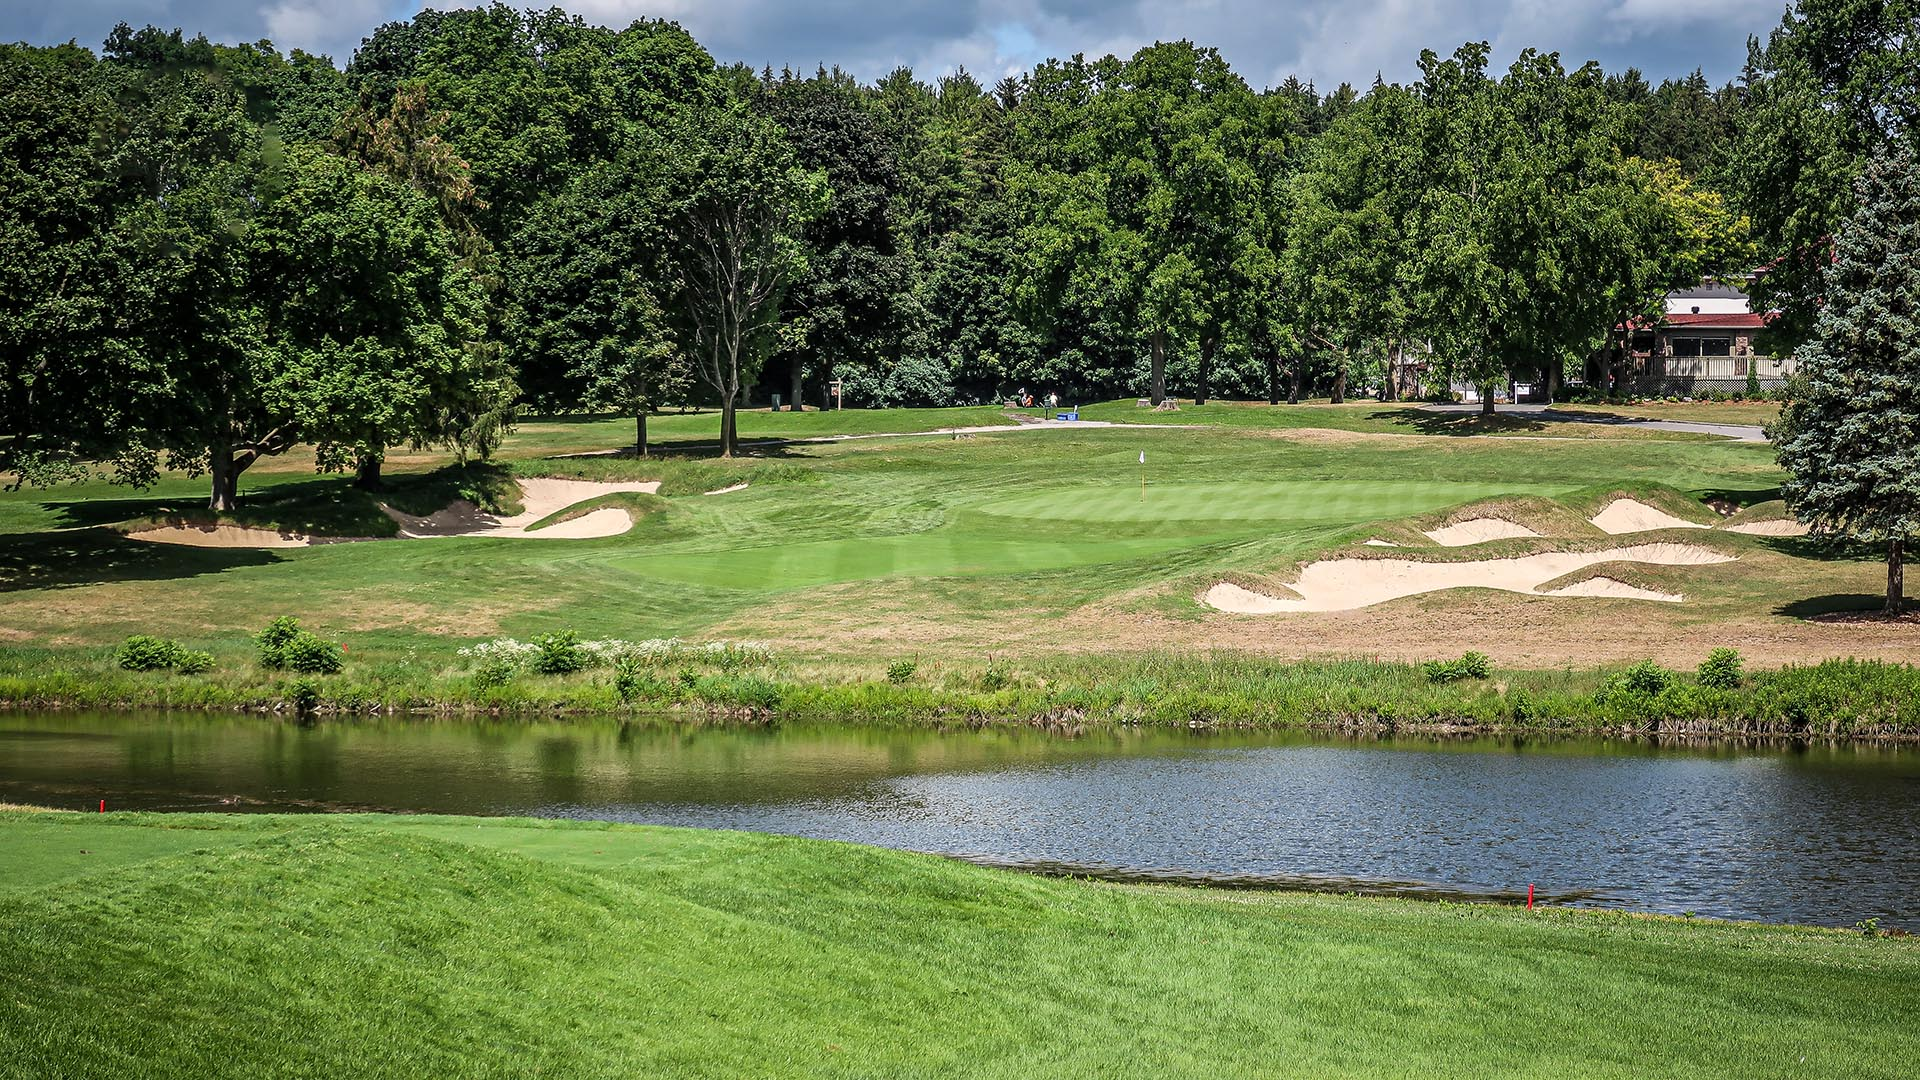 Course Review: Kawartha Golf & Country Club